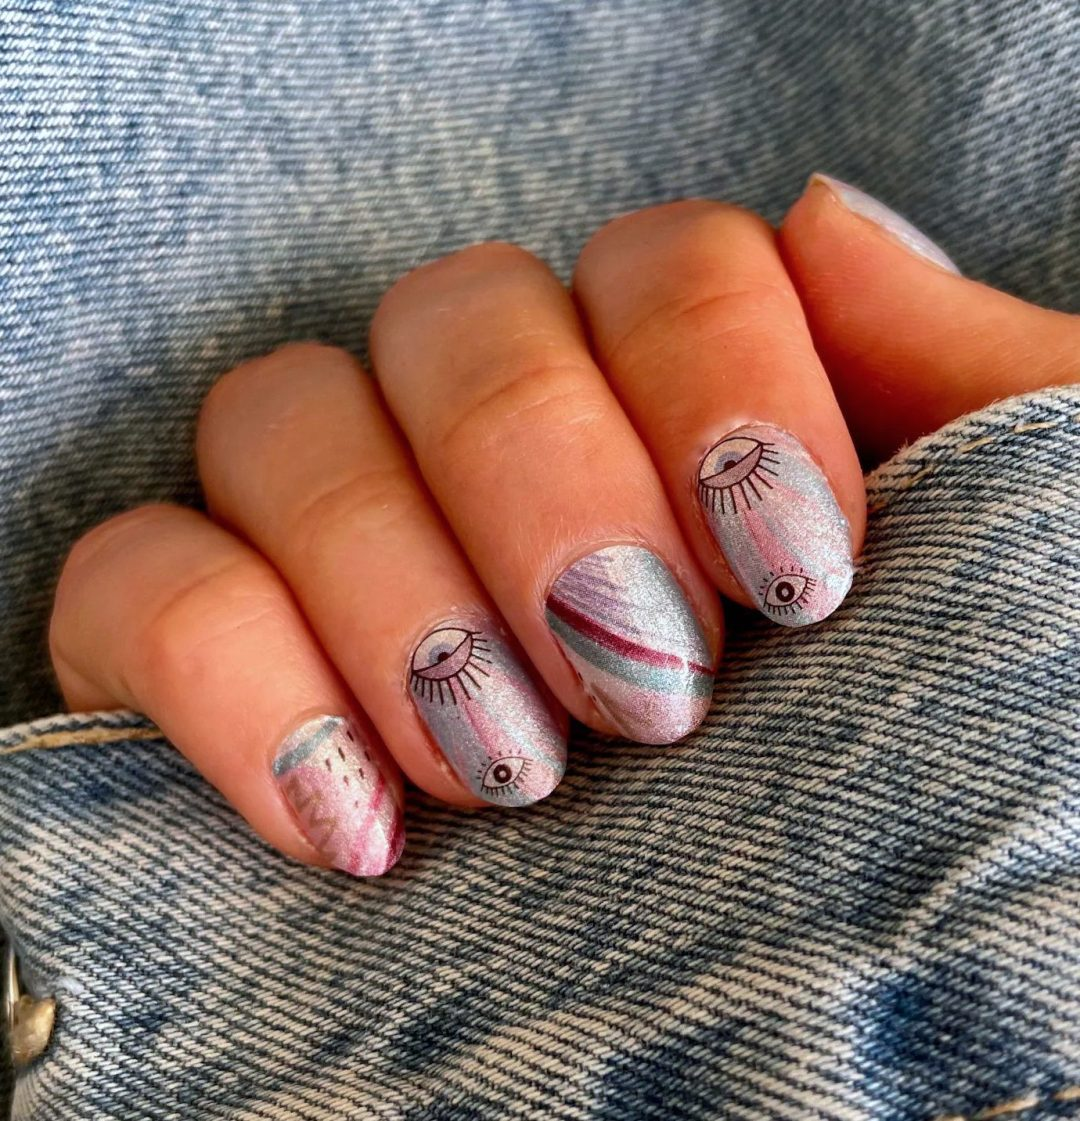 Short shimmer and glitter nails with eyes